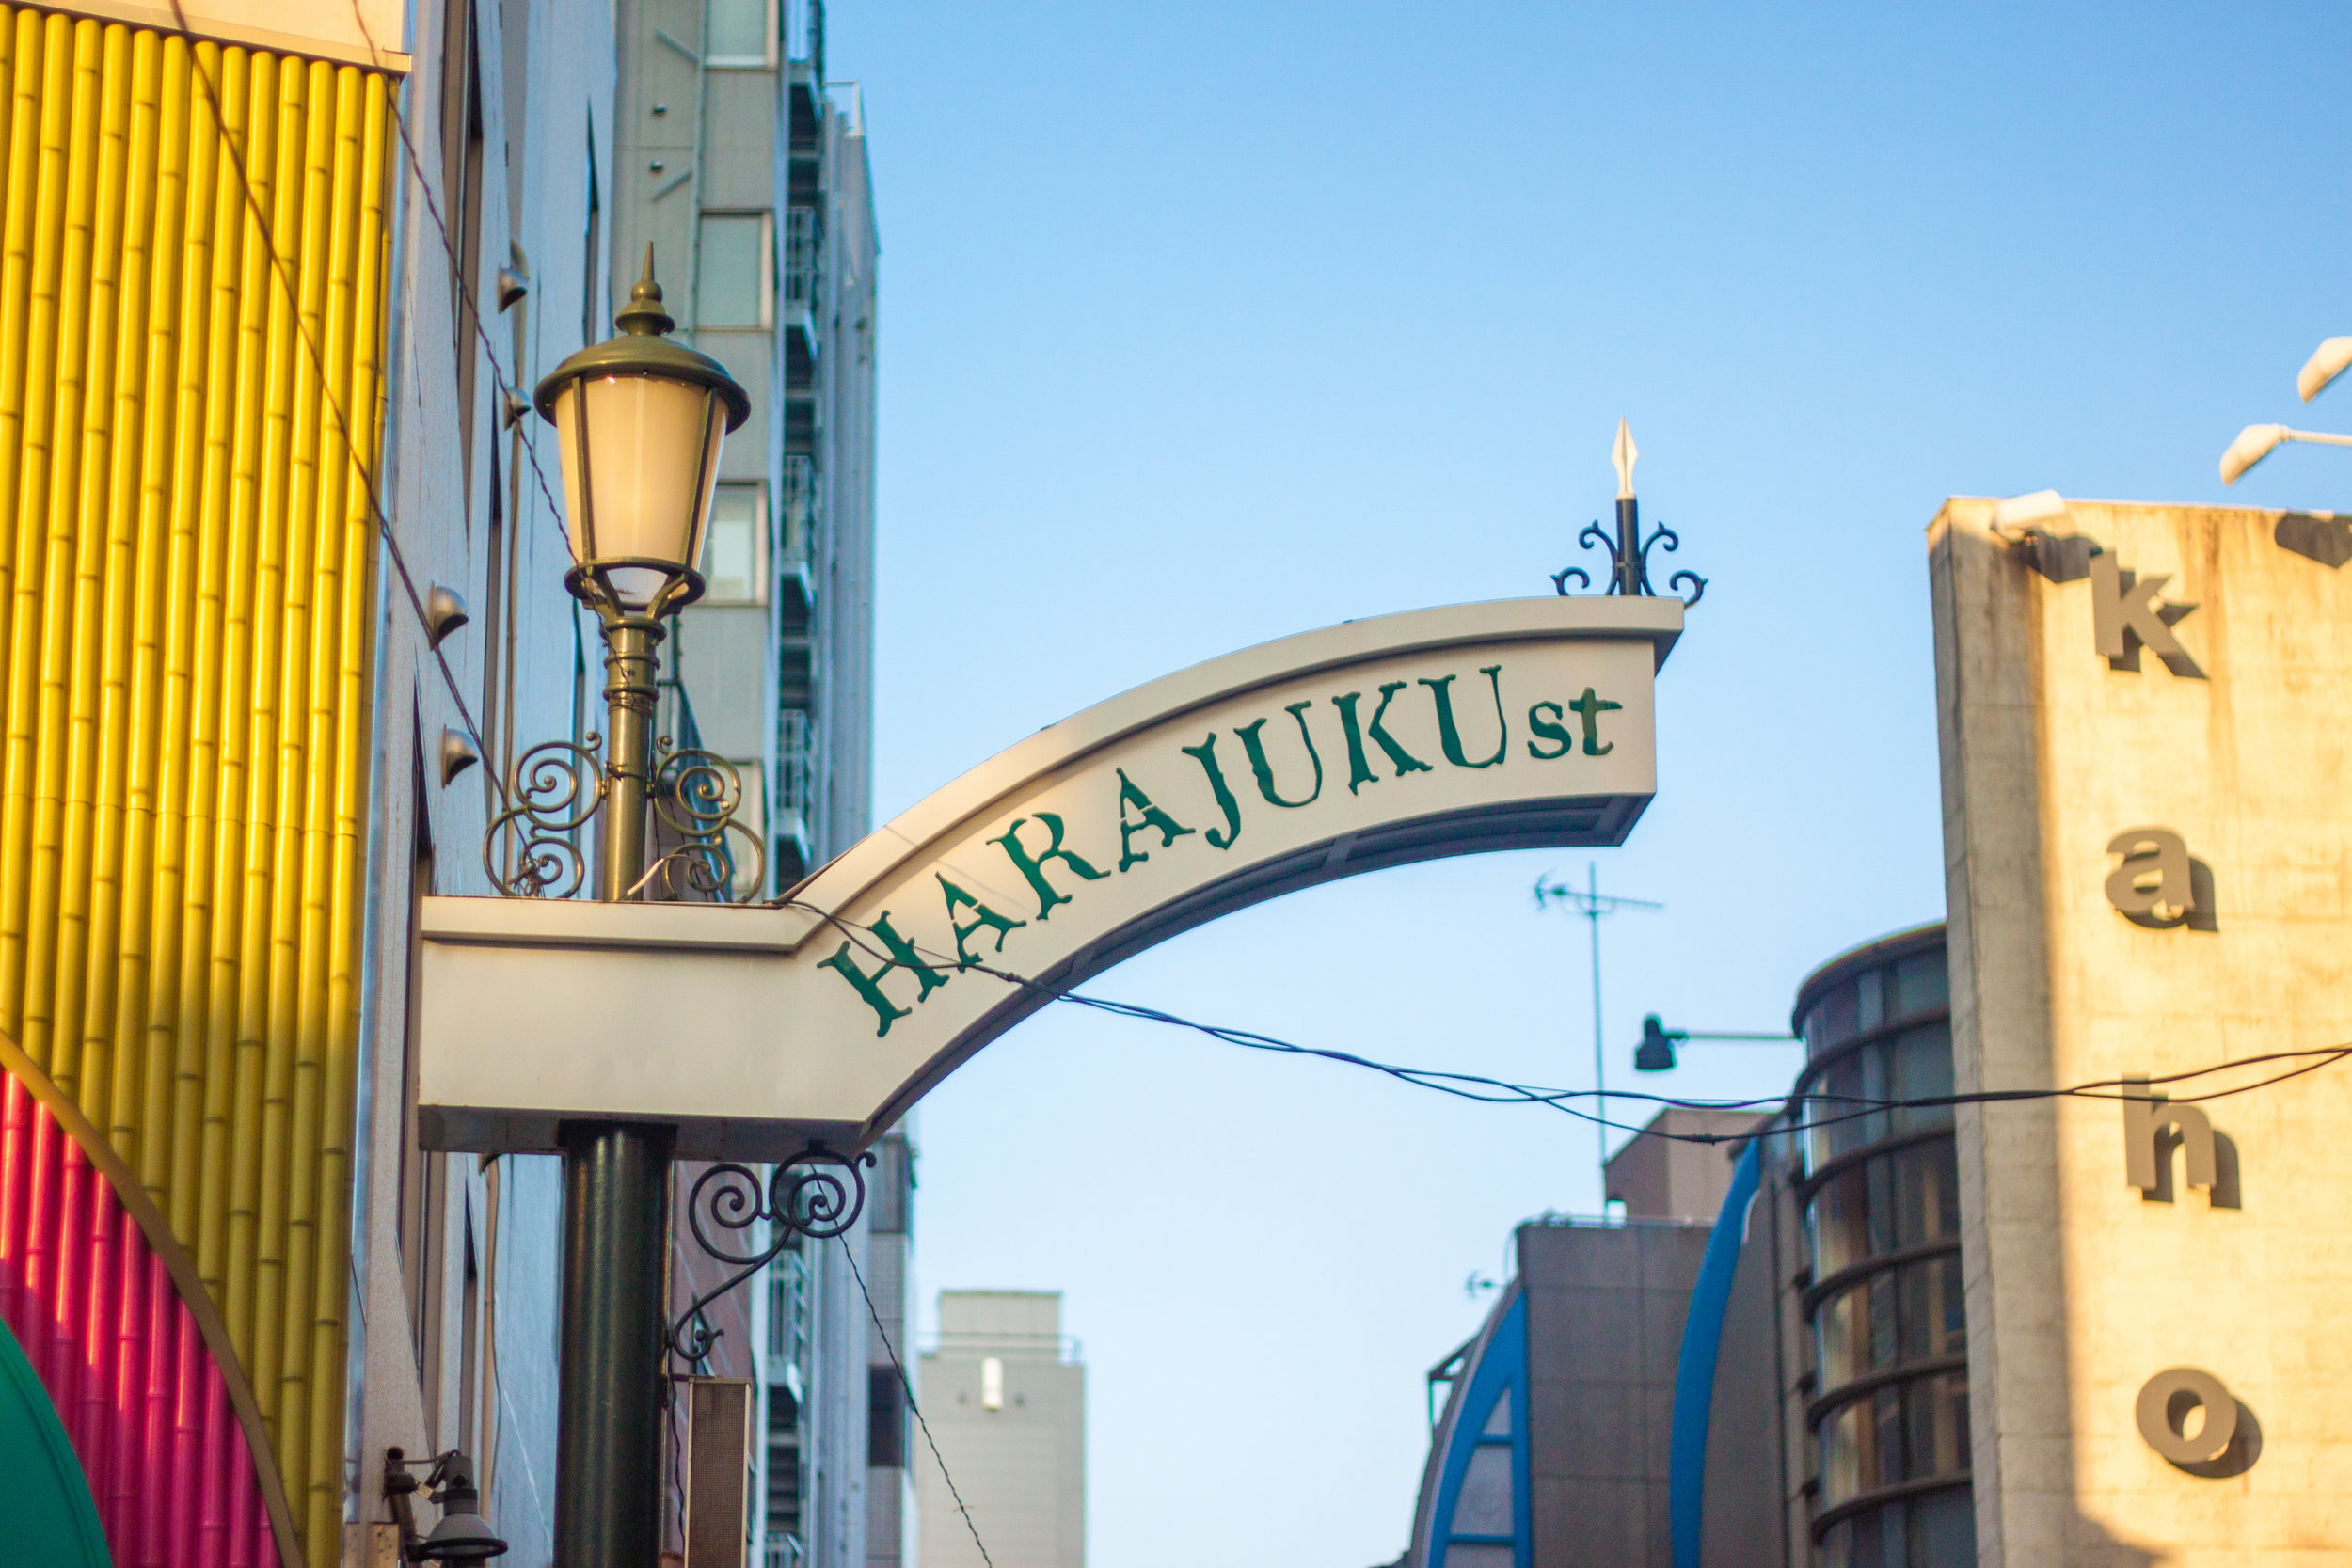 The Ultimate Guide to Harajuku! What to See, Eat, Wear and Do in Tokyo's Hippest Neighborhood